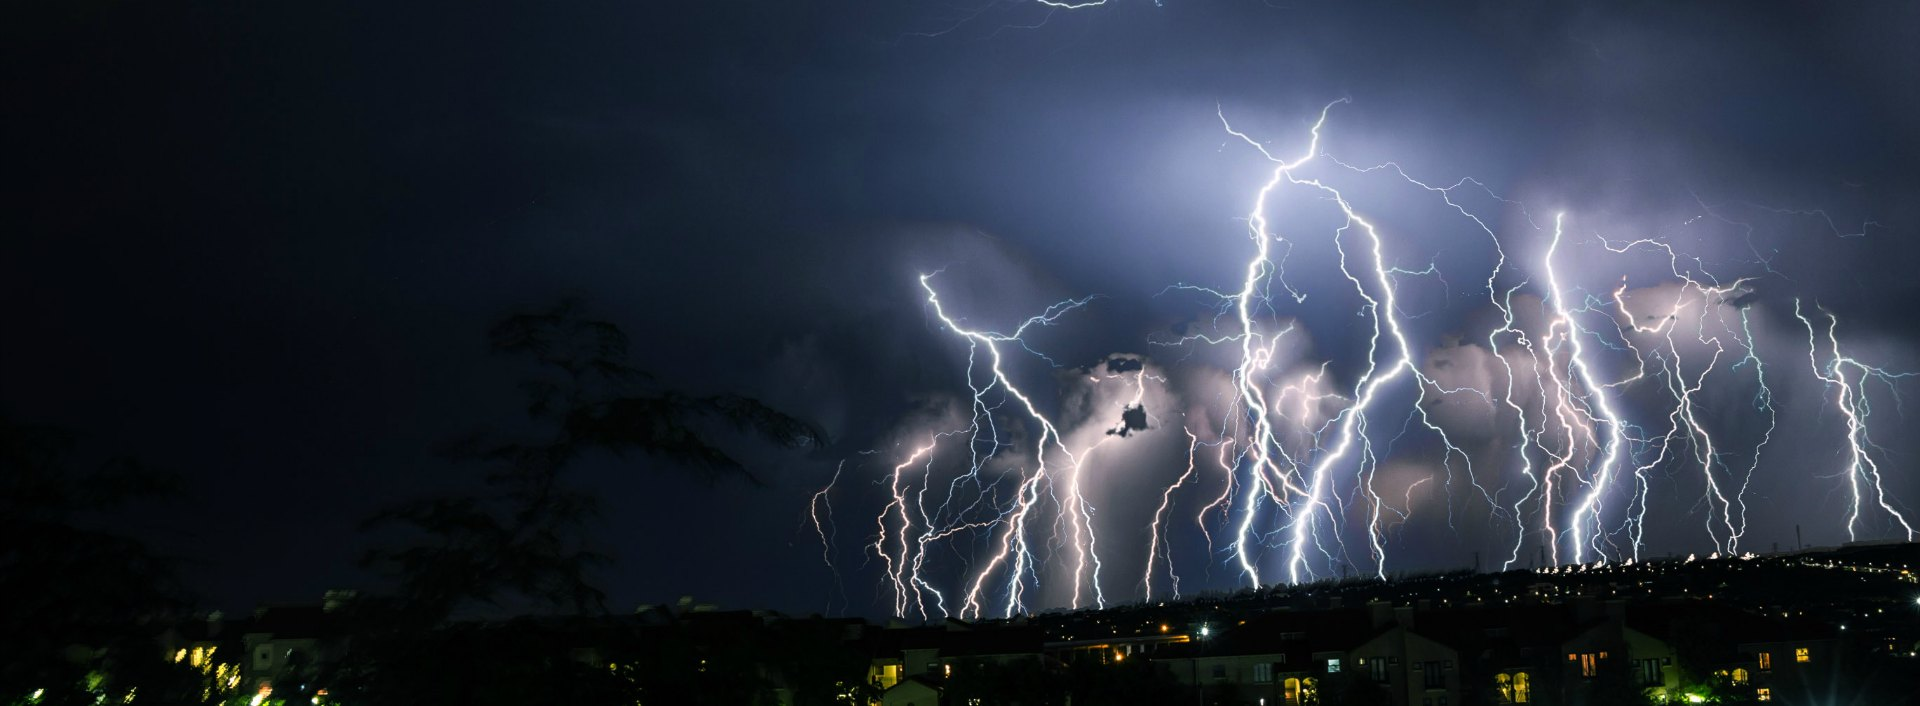 Lightening during a thunder storm and other weather words in English.